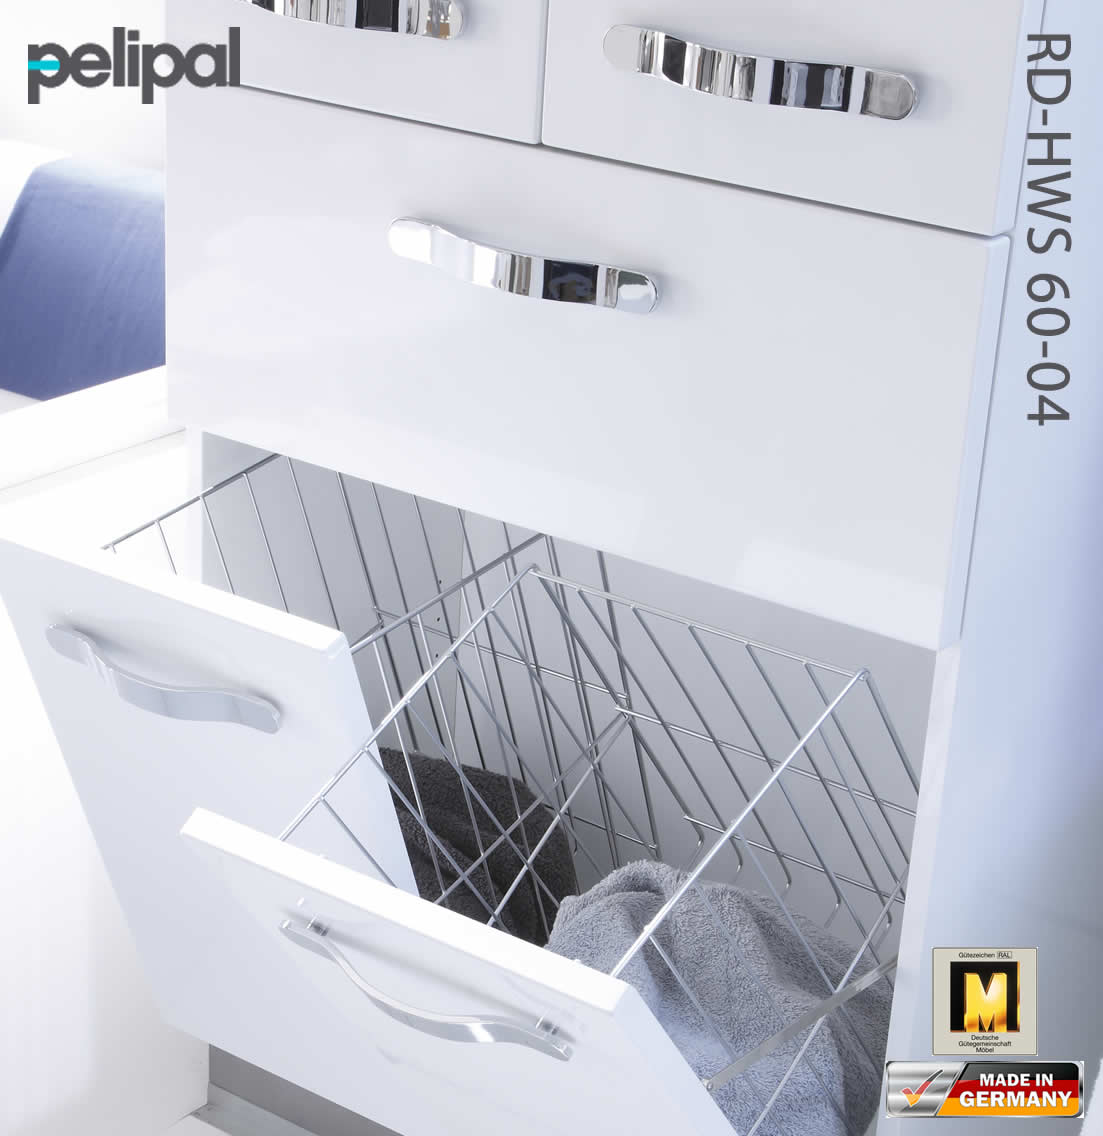 pelipal solitaire 7005 hochschrank 168 cm rd hsw 60 04 impuls home. Black Bedroom Furniture Sets. Home Design Ideas